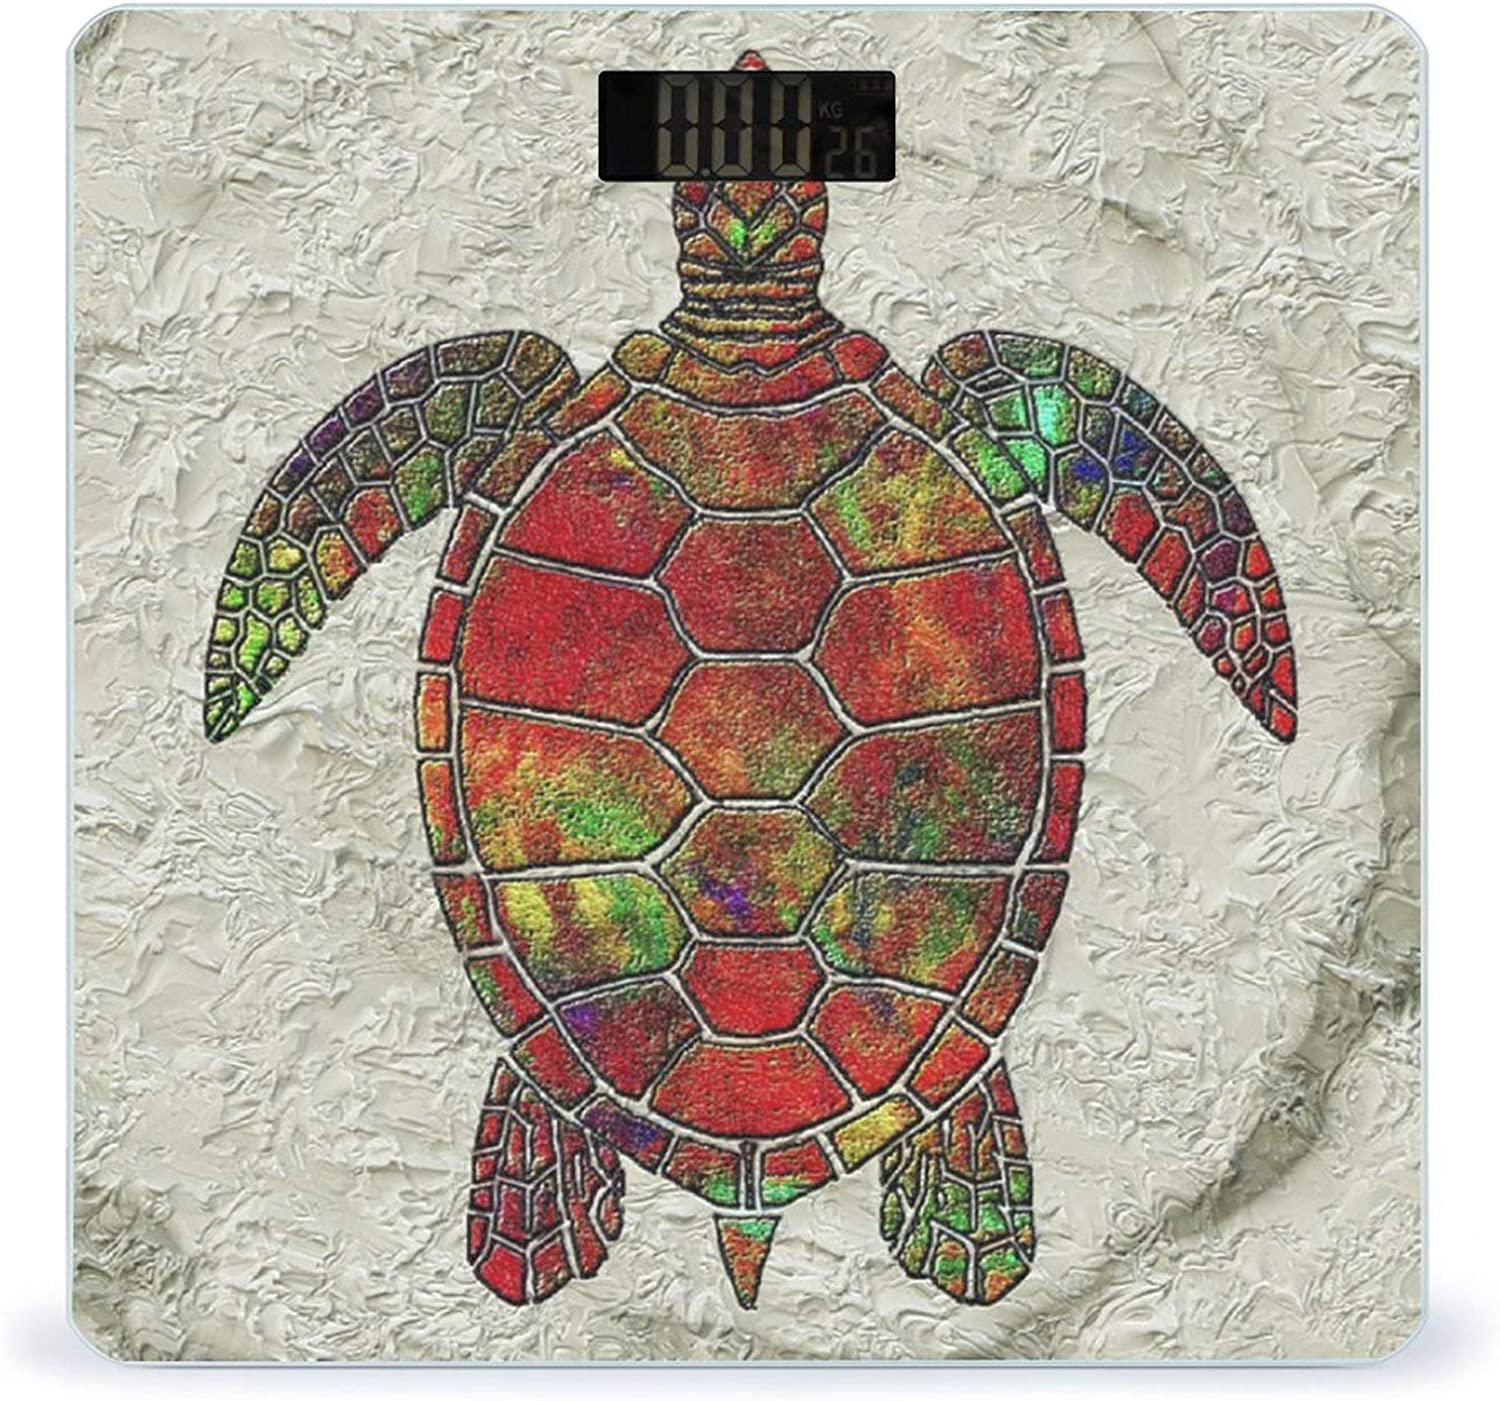 CHUFZSD The Waves Turtle Highly Wei Scale Fitness Smart Purchase Outlet ☆ Free Shipping Accurate